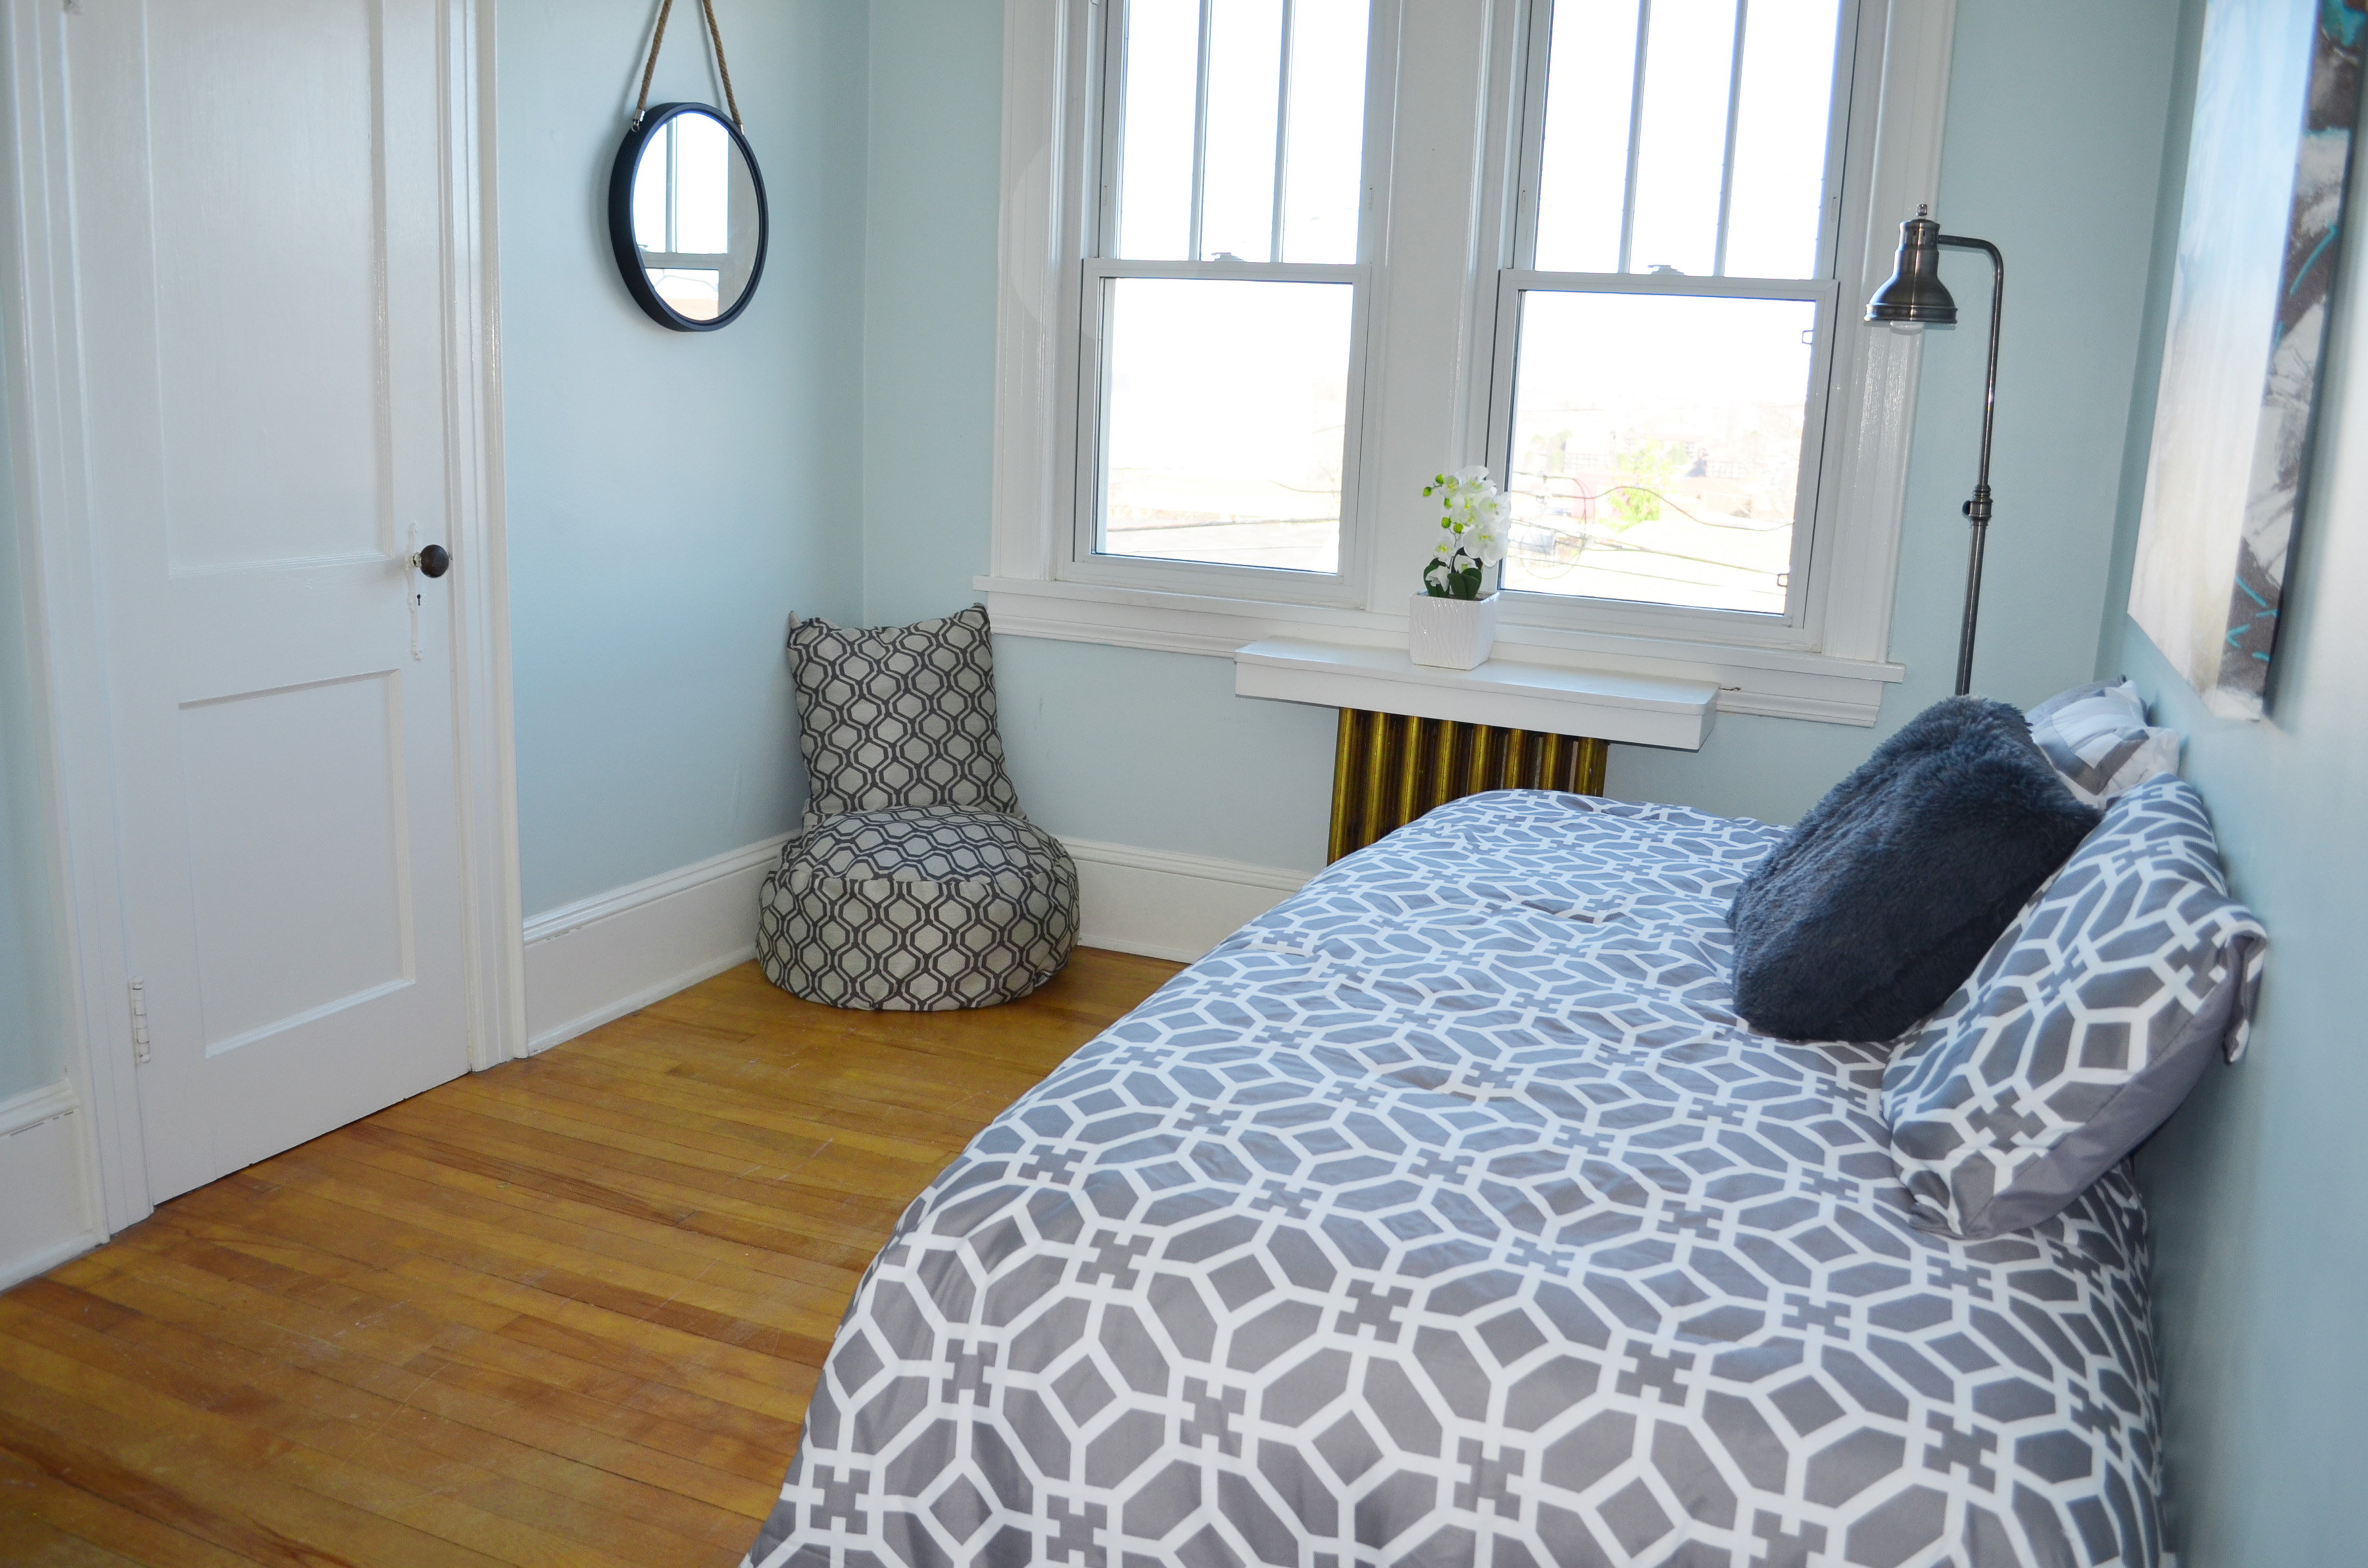 Home Stager Halifax Home Staging Real Estate Vacant Staging Pam MacKinnon Revive Home Staging 4